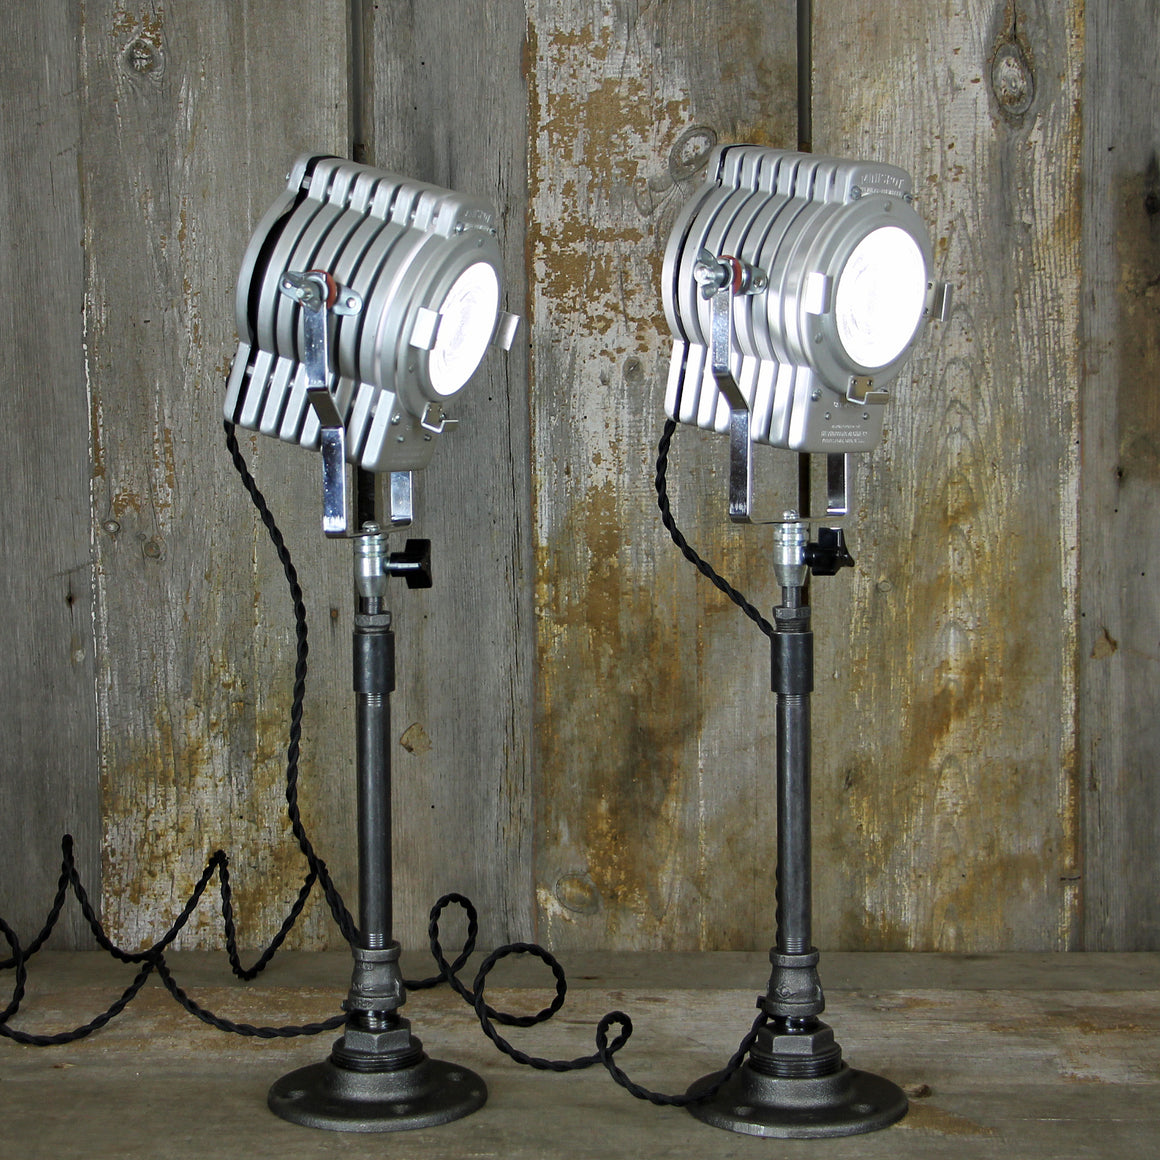 Industrial Table Lamps - Photo Spot Light Pair - No. 2018 - The Lighting Works